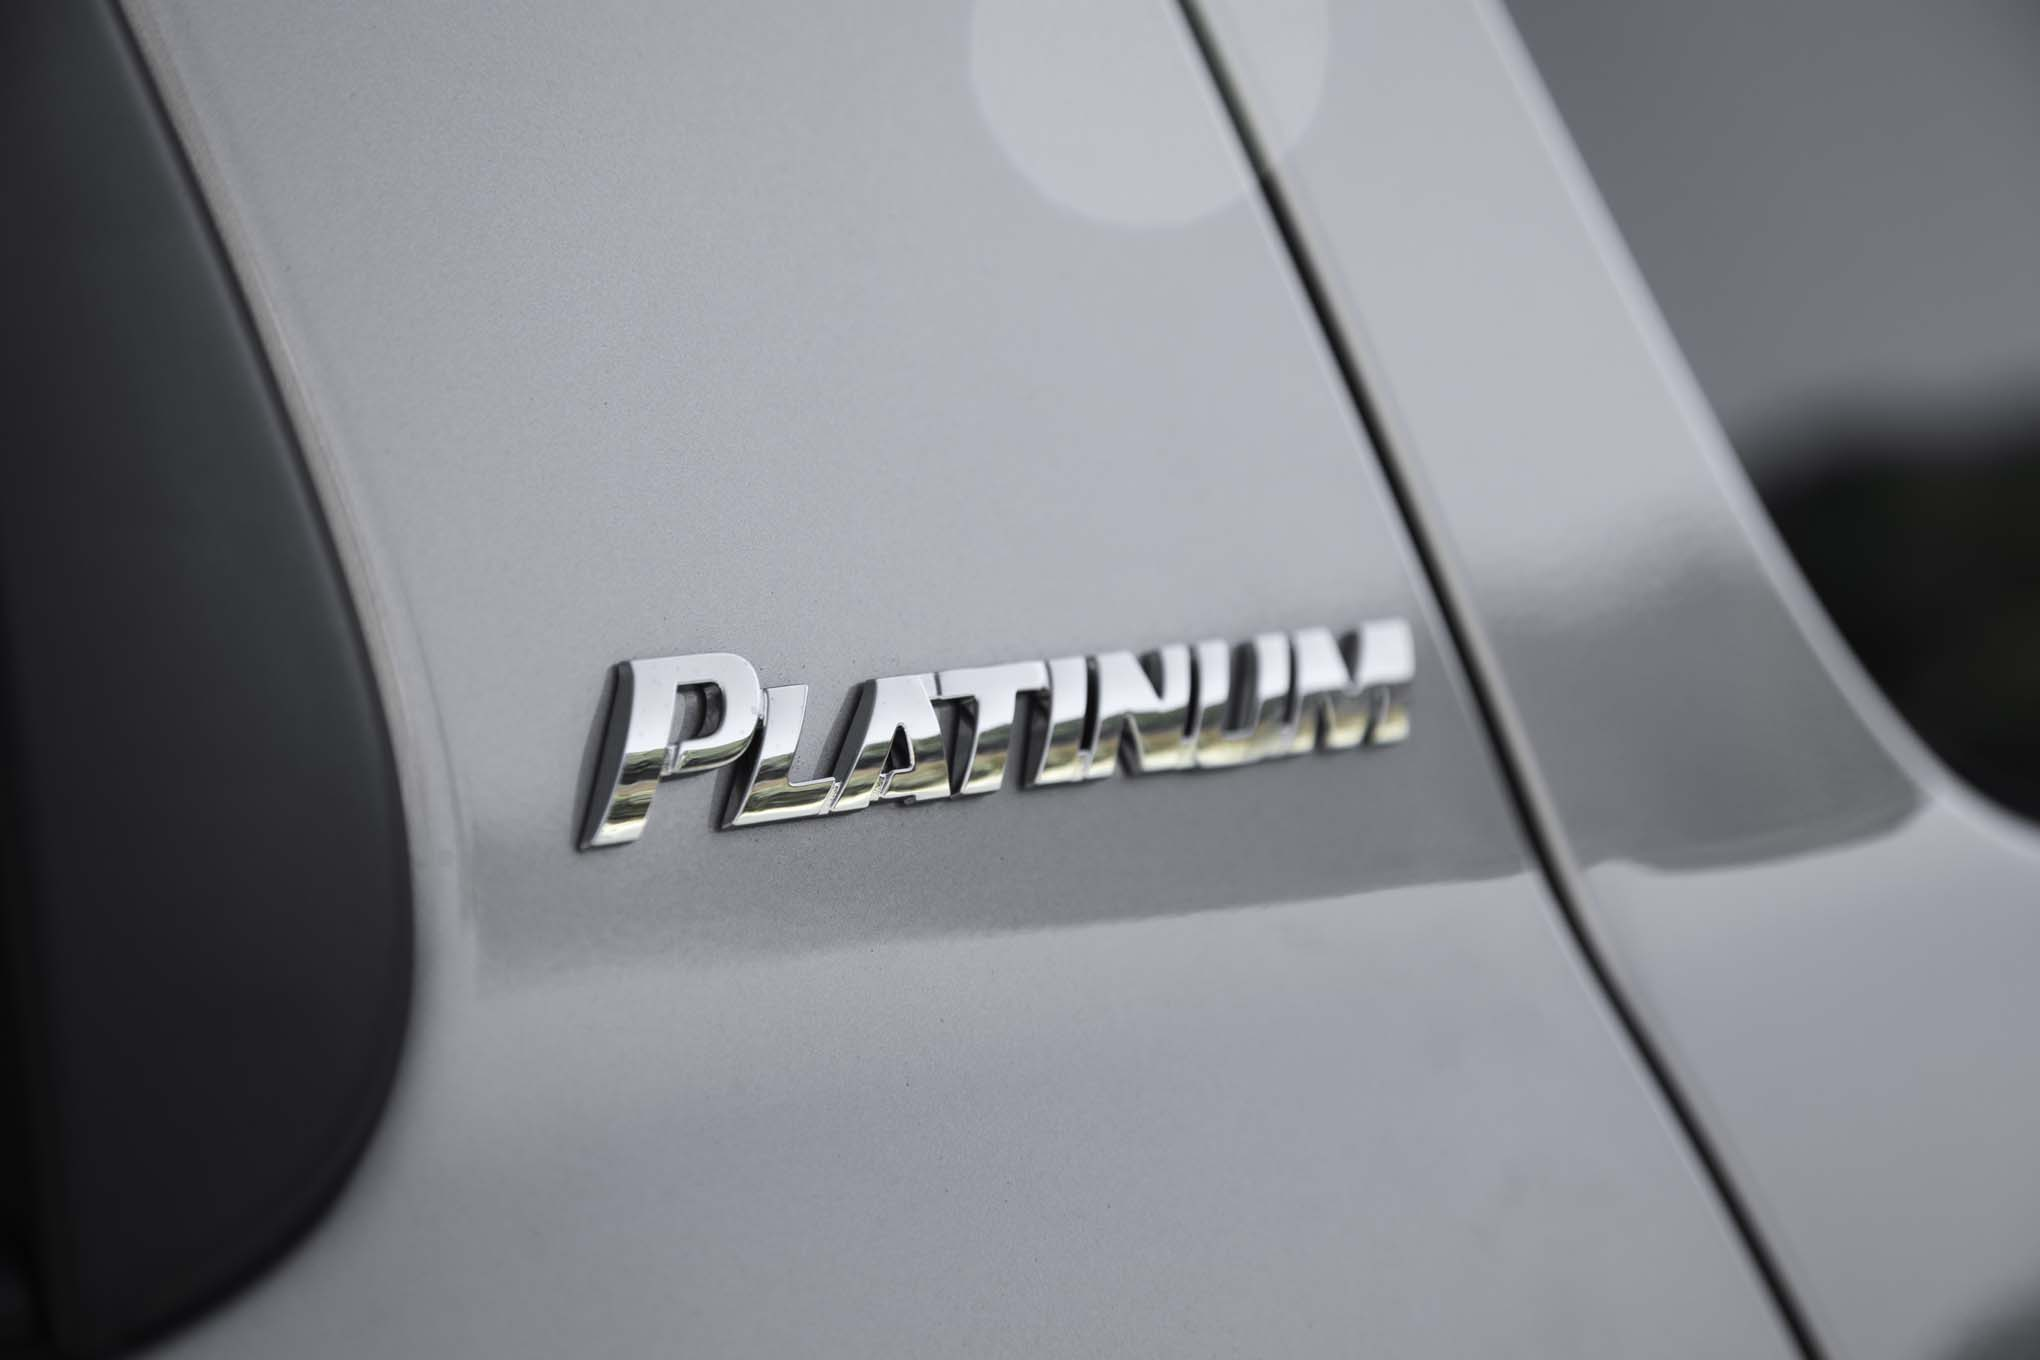 2017 Toyota Sequoia 4×4 Platinum Exterior View Rear Emblem (Photo 12 of 26)